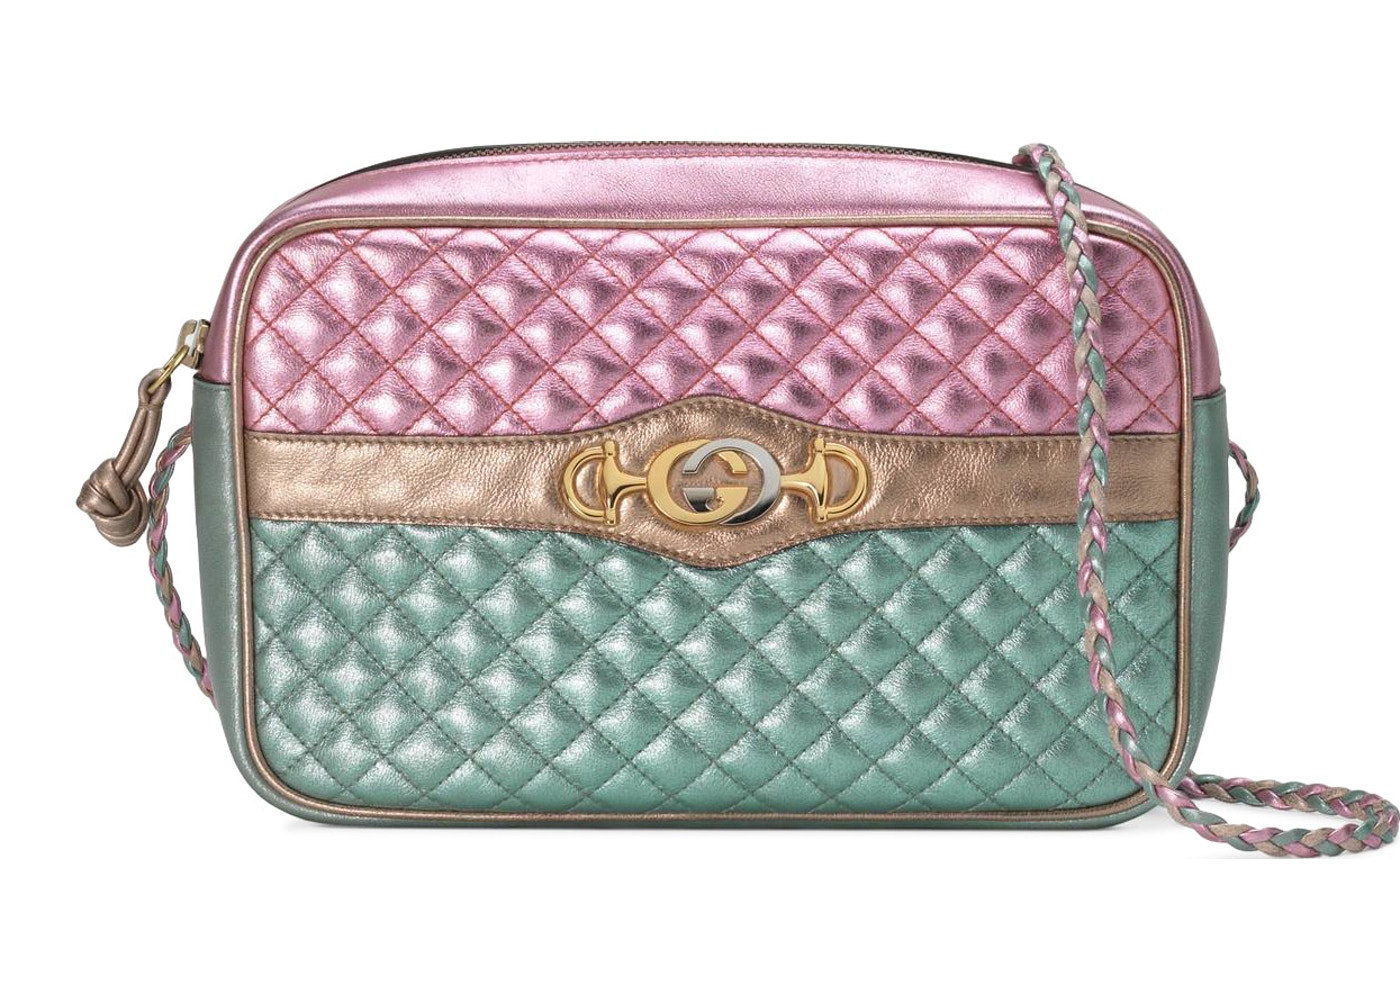 cd2ecf6fd Gucci Laminated Shoulder Bag Small Pink/Blue. Small Pink/Blue